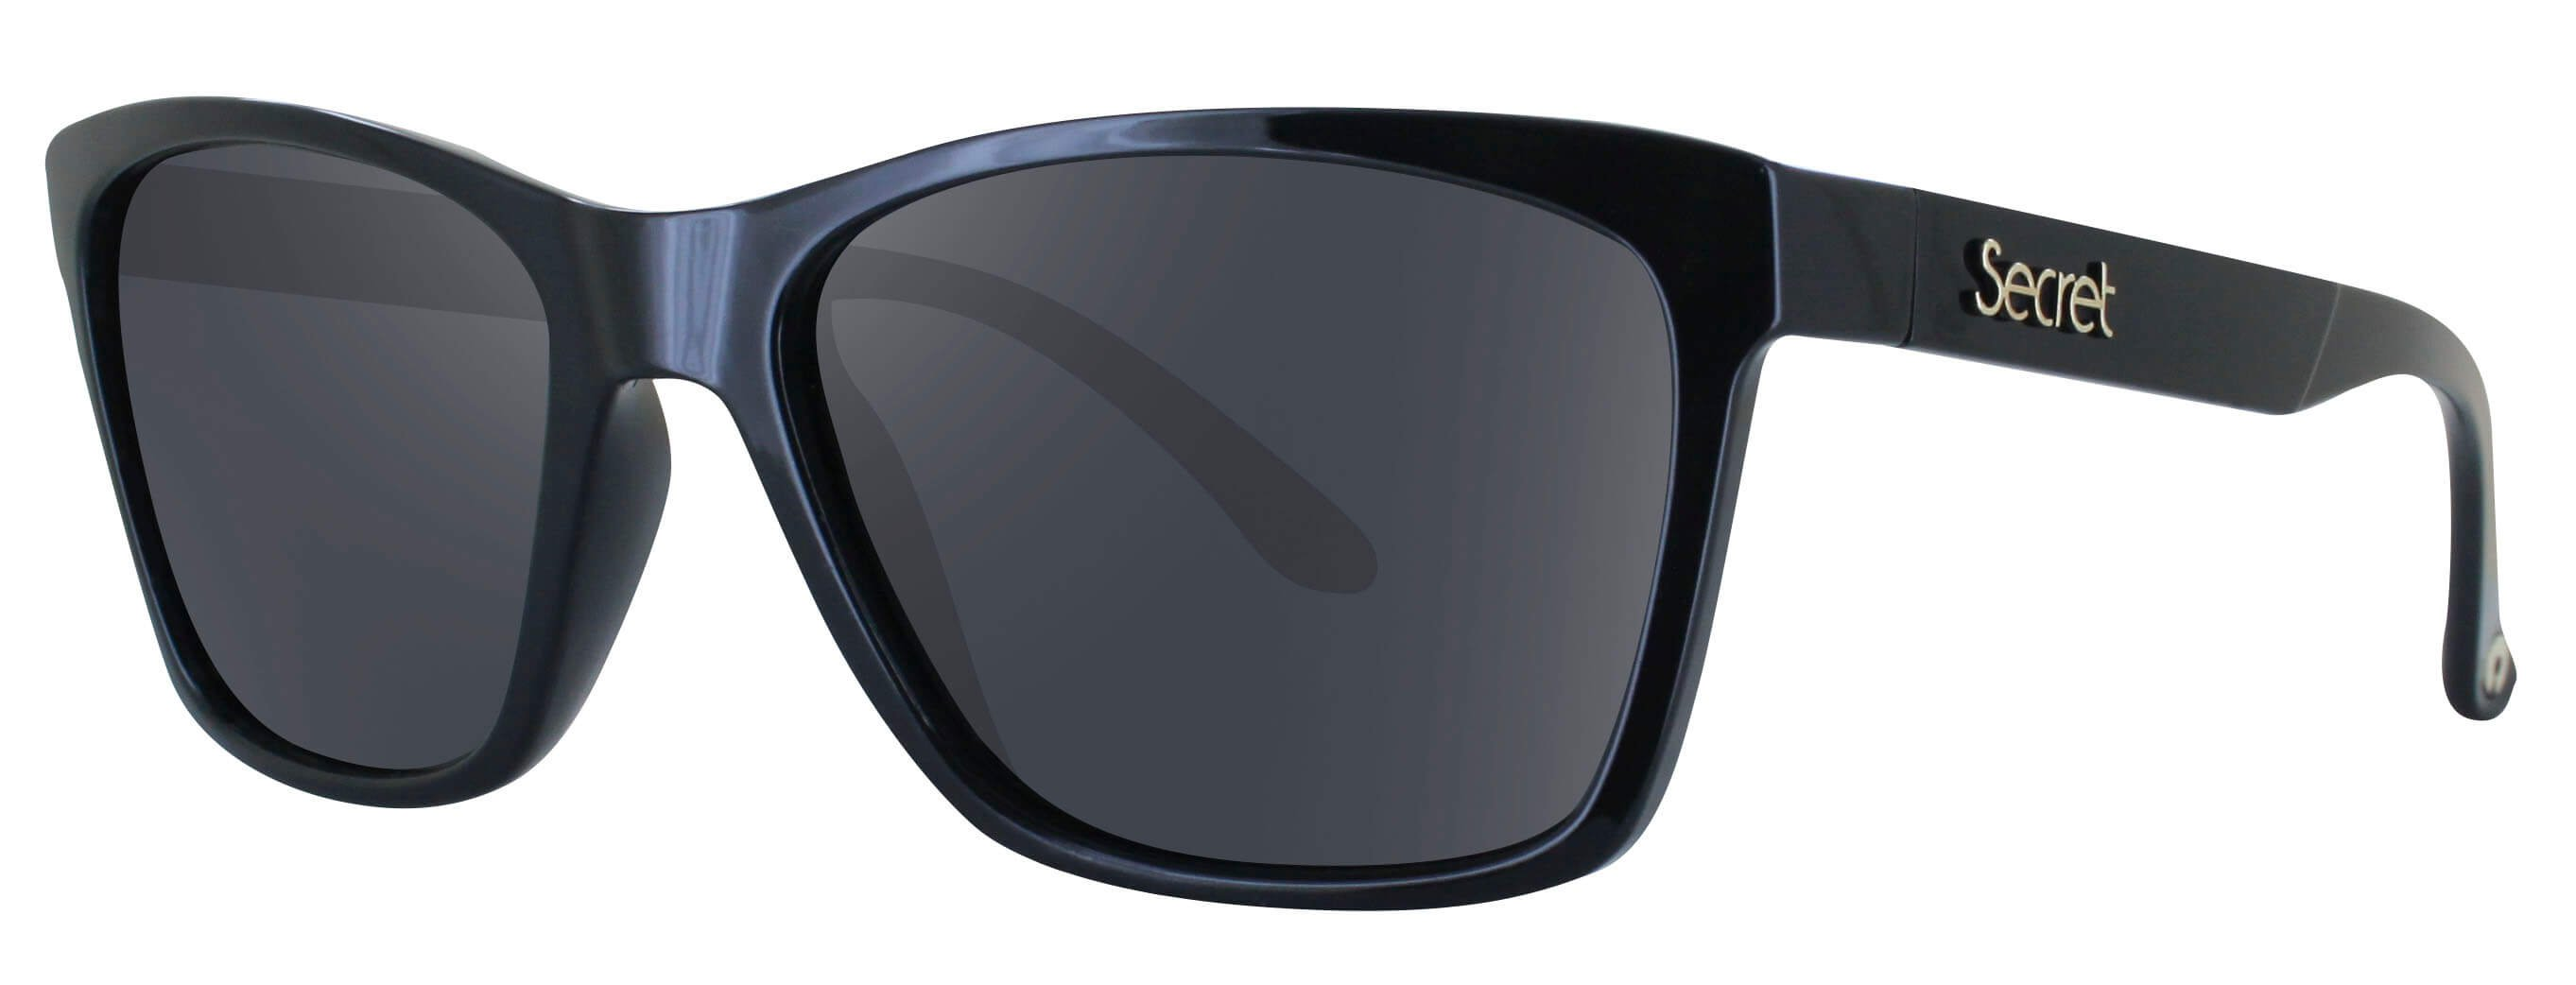 ÓC SECRET SOPHIA GLOSS BLACK / POLARIZED GRAY